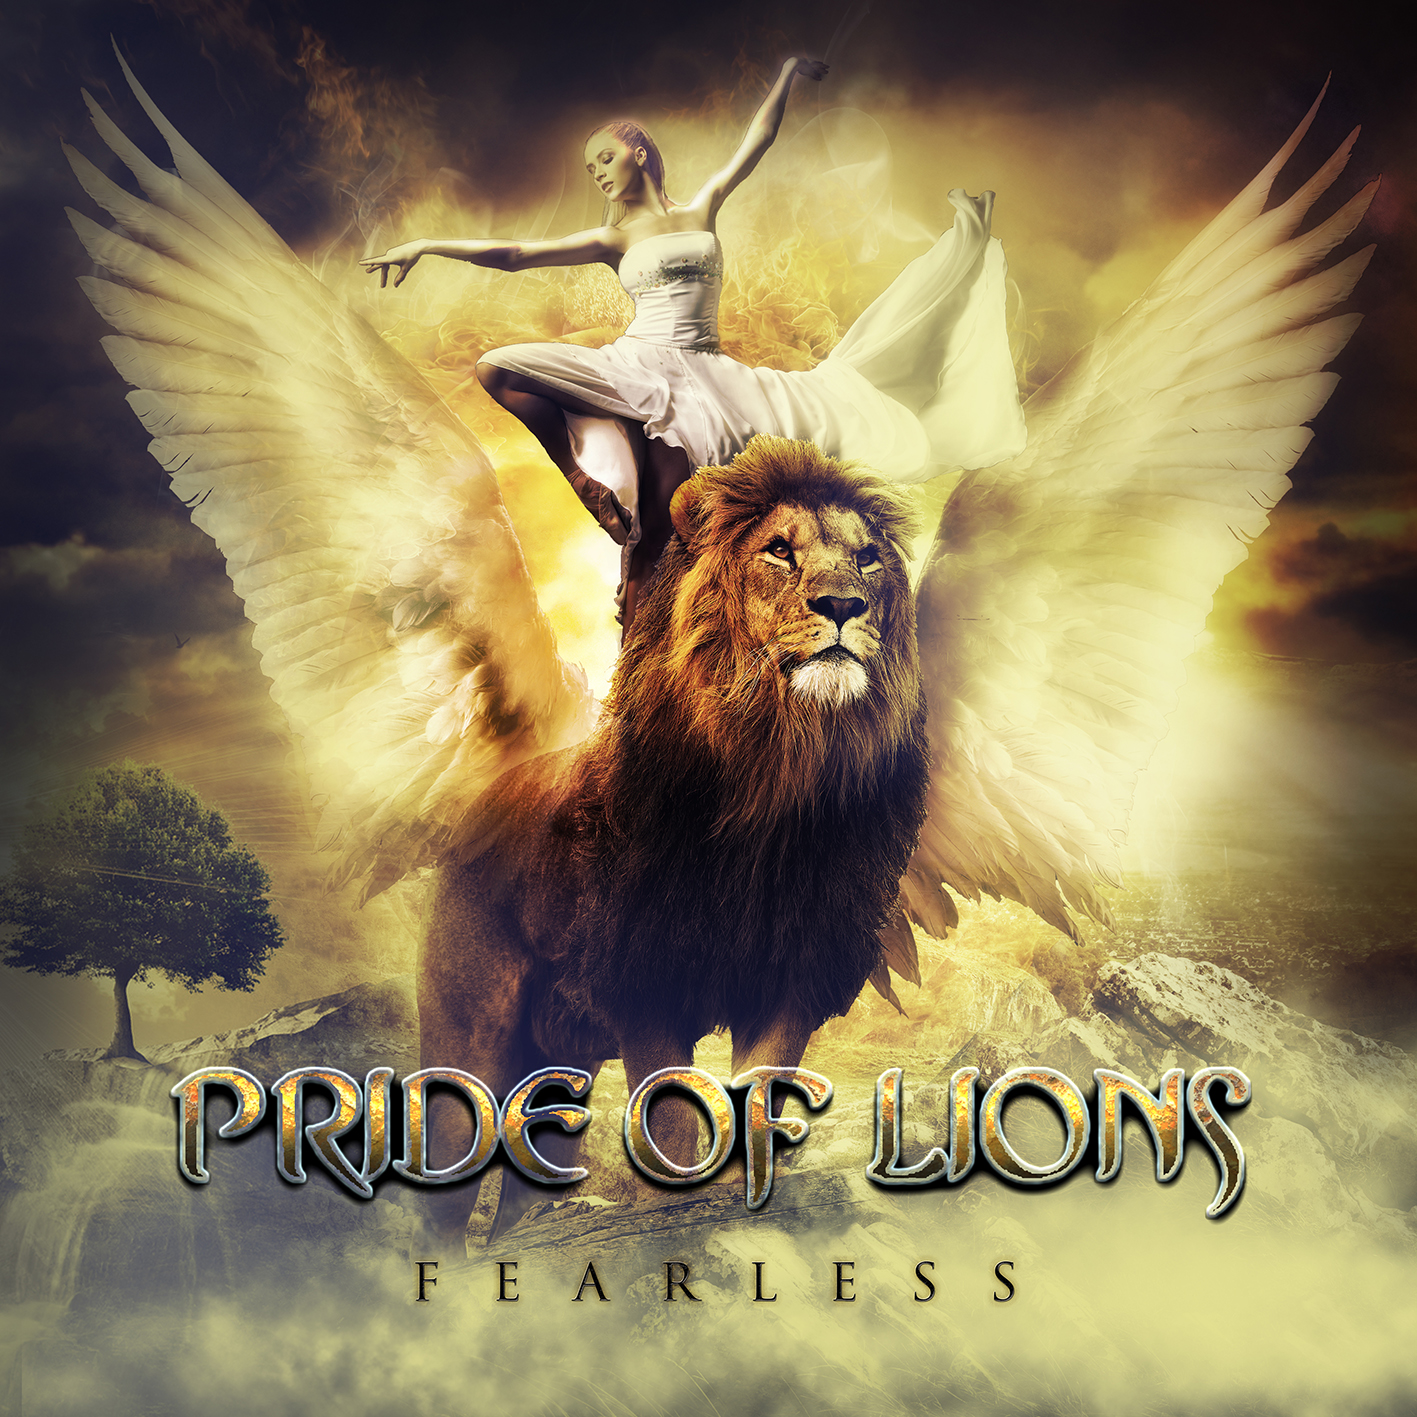 PRIDE_OF_LIONS_fearless_COVER_HI